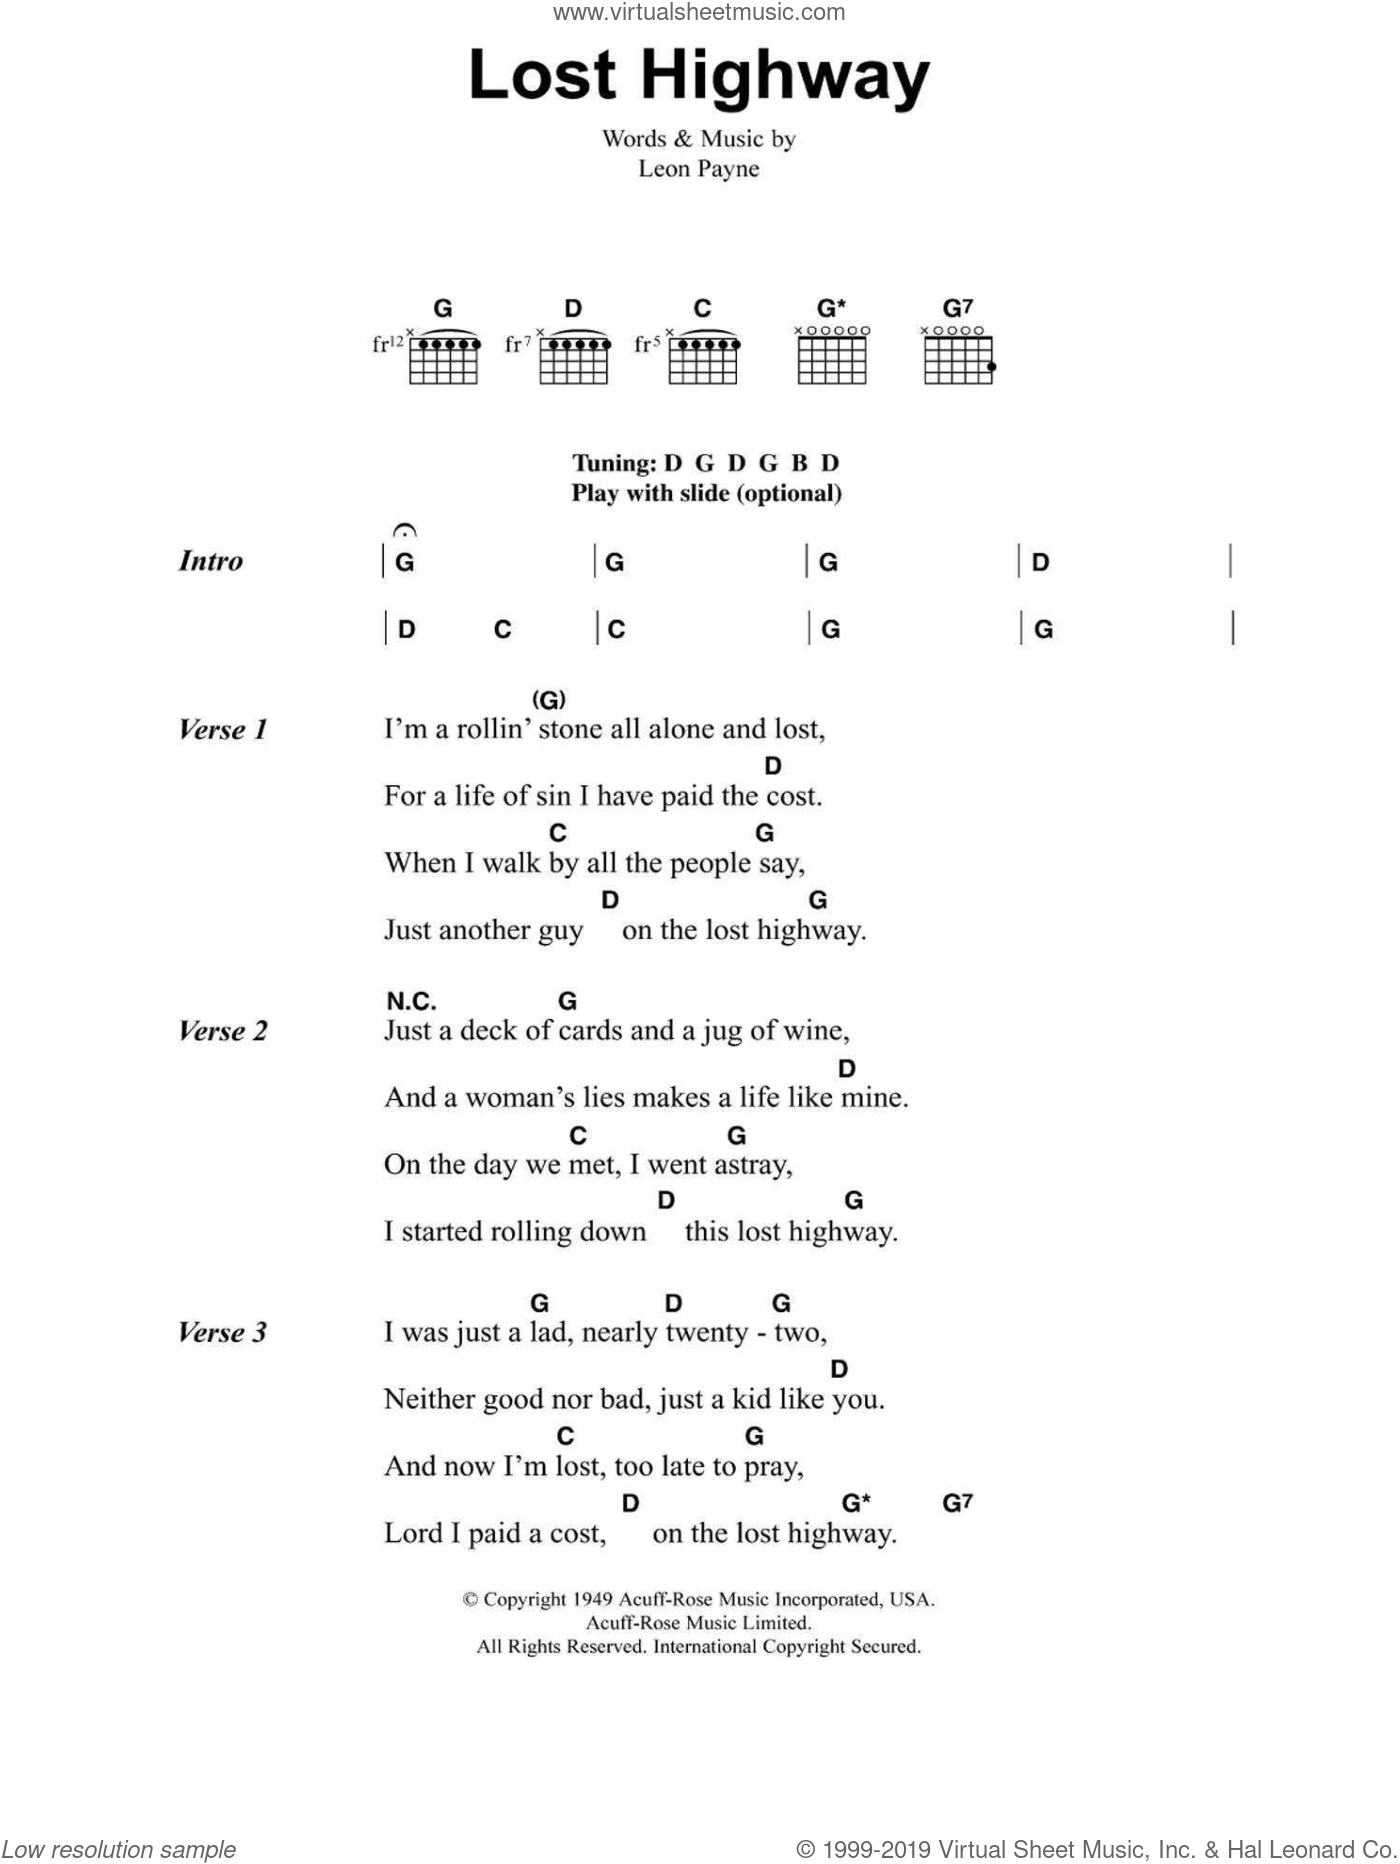 Williams - Lost Highway sheet music for guitar (chords) [PDF]